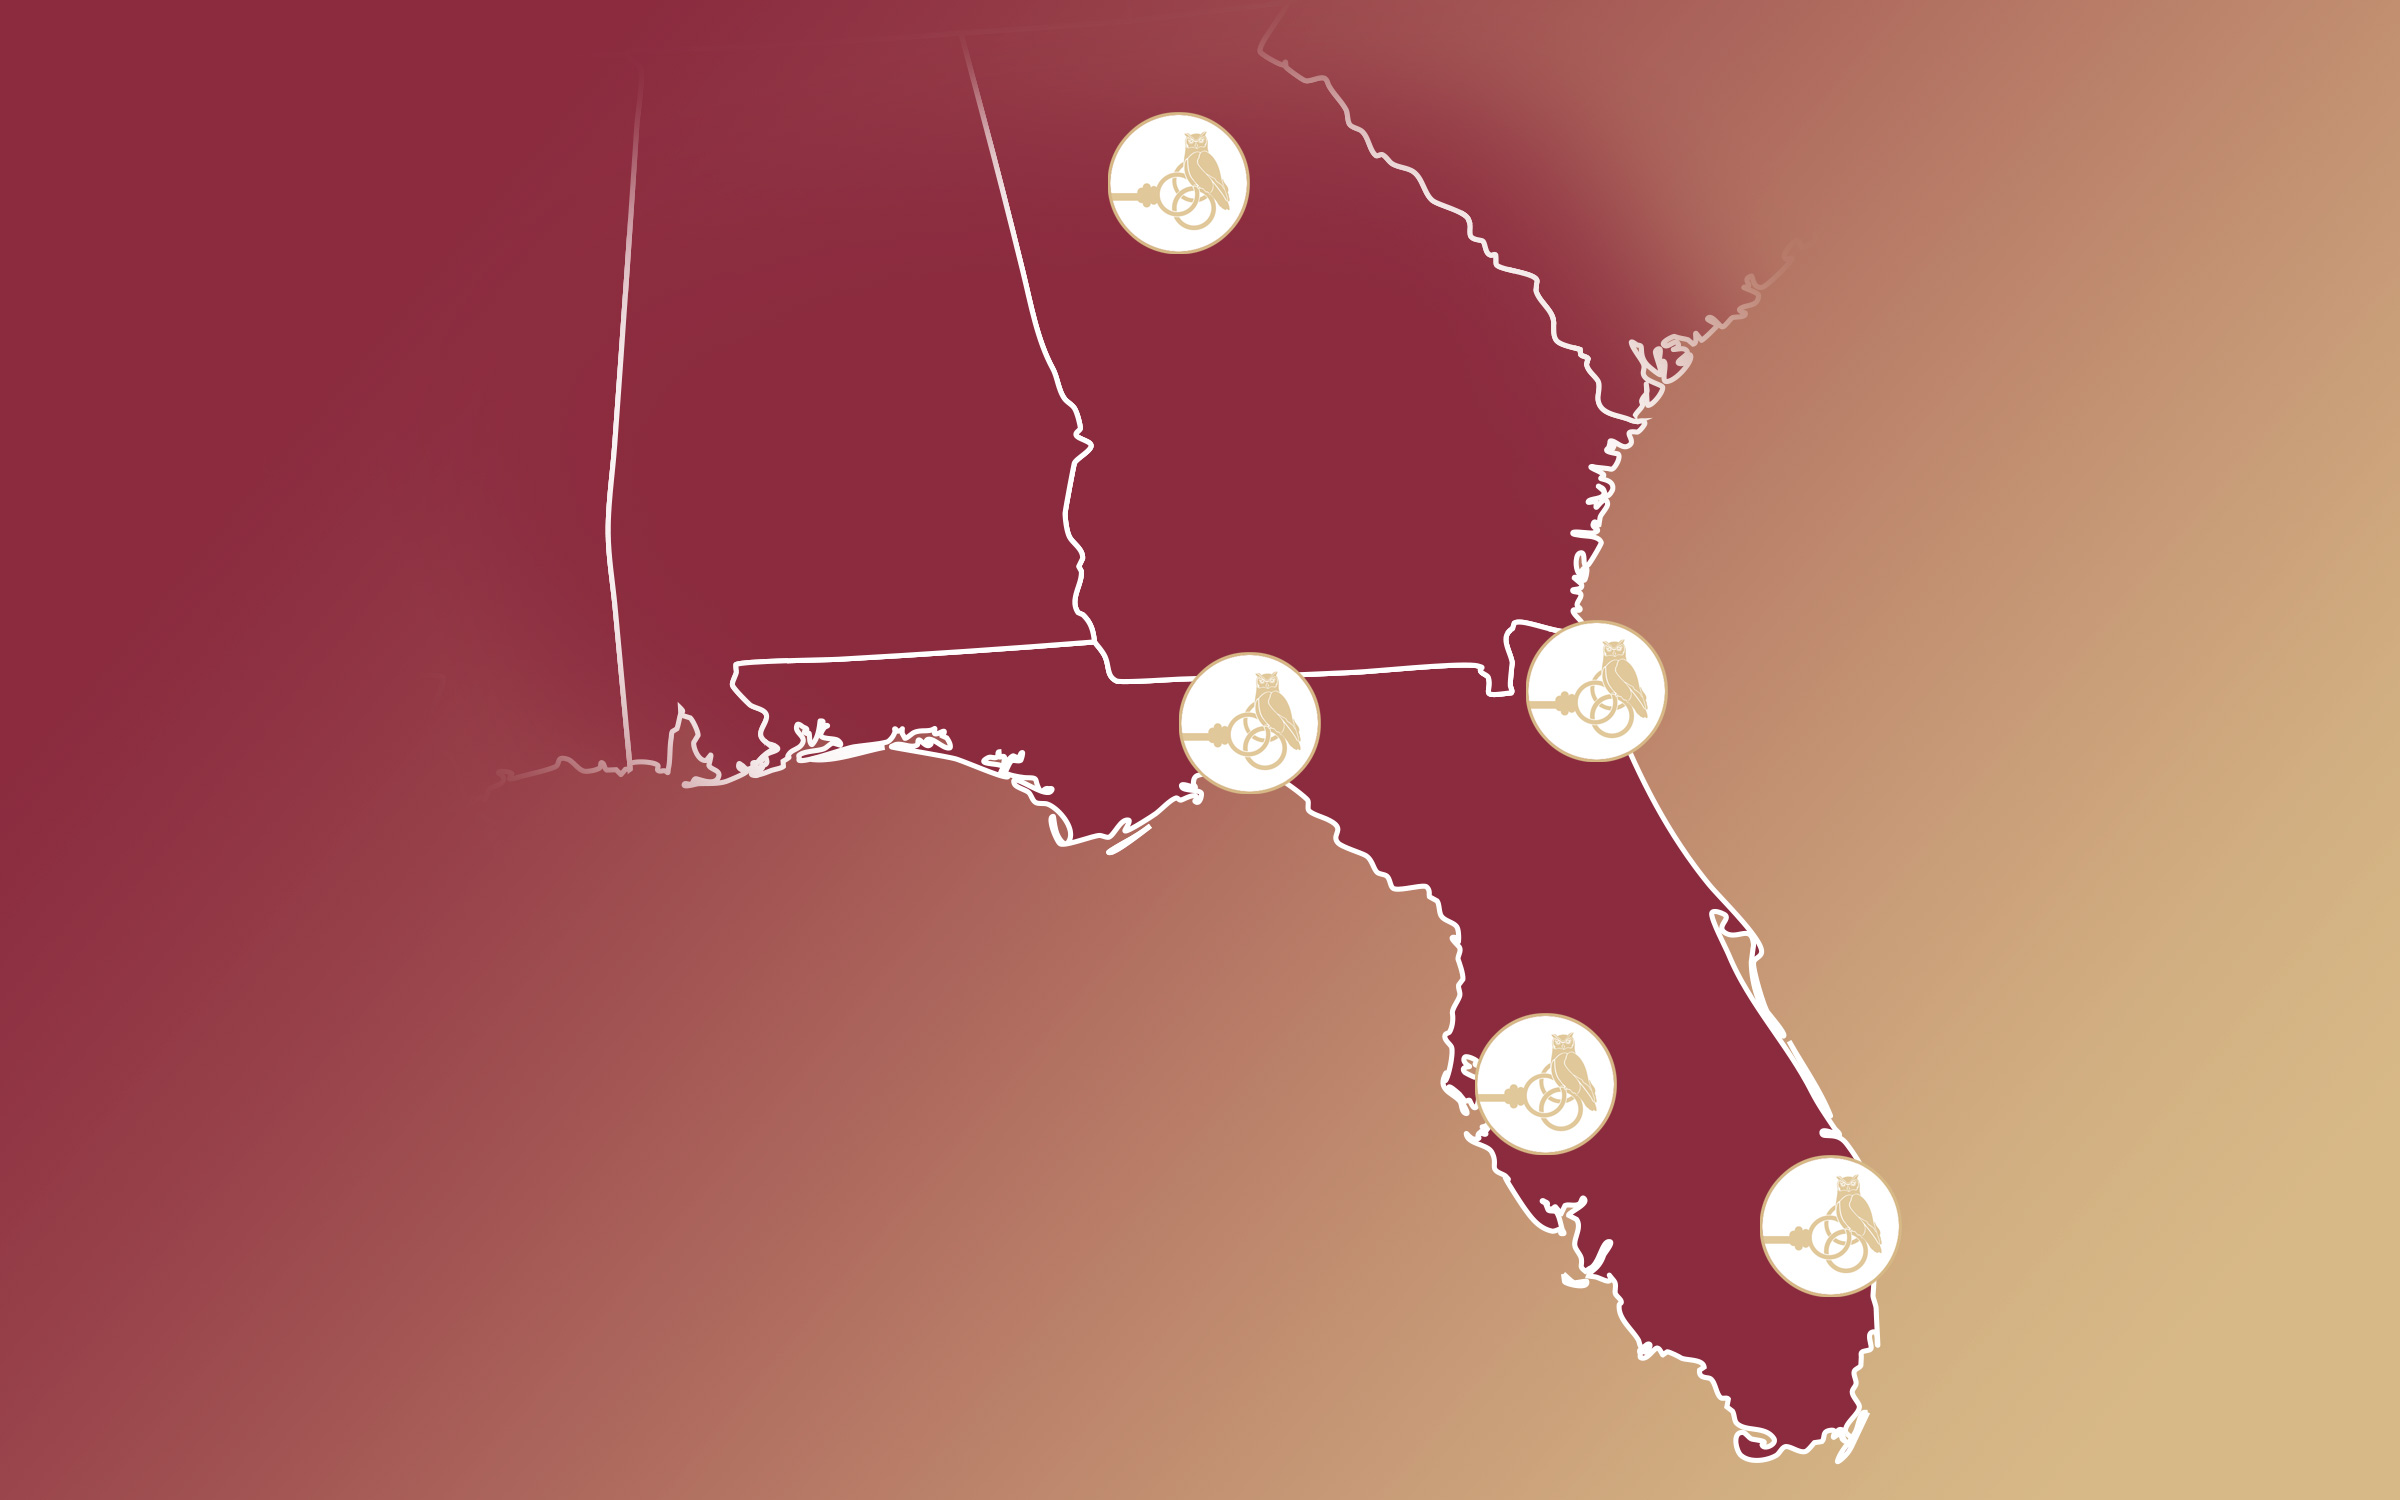 Banner image of the state of Florida featuring the owl and key logo